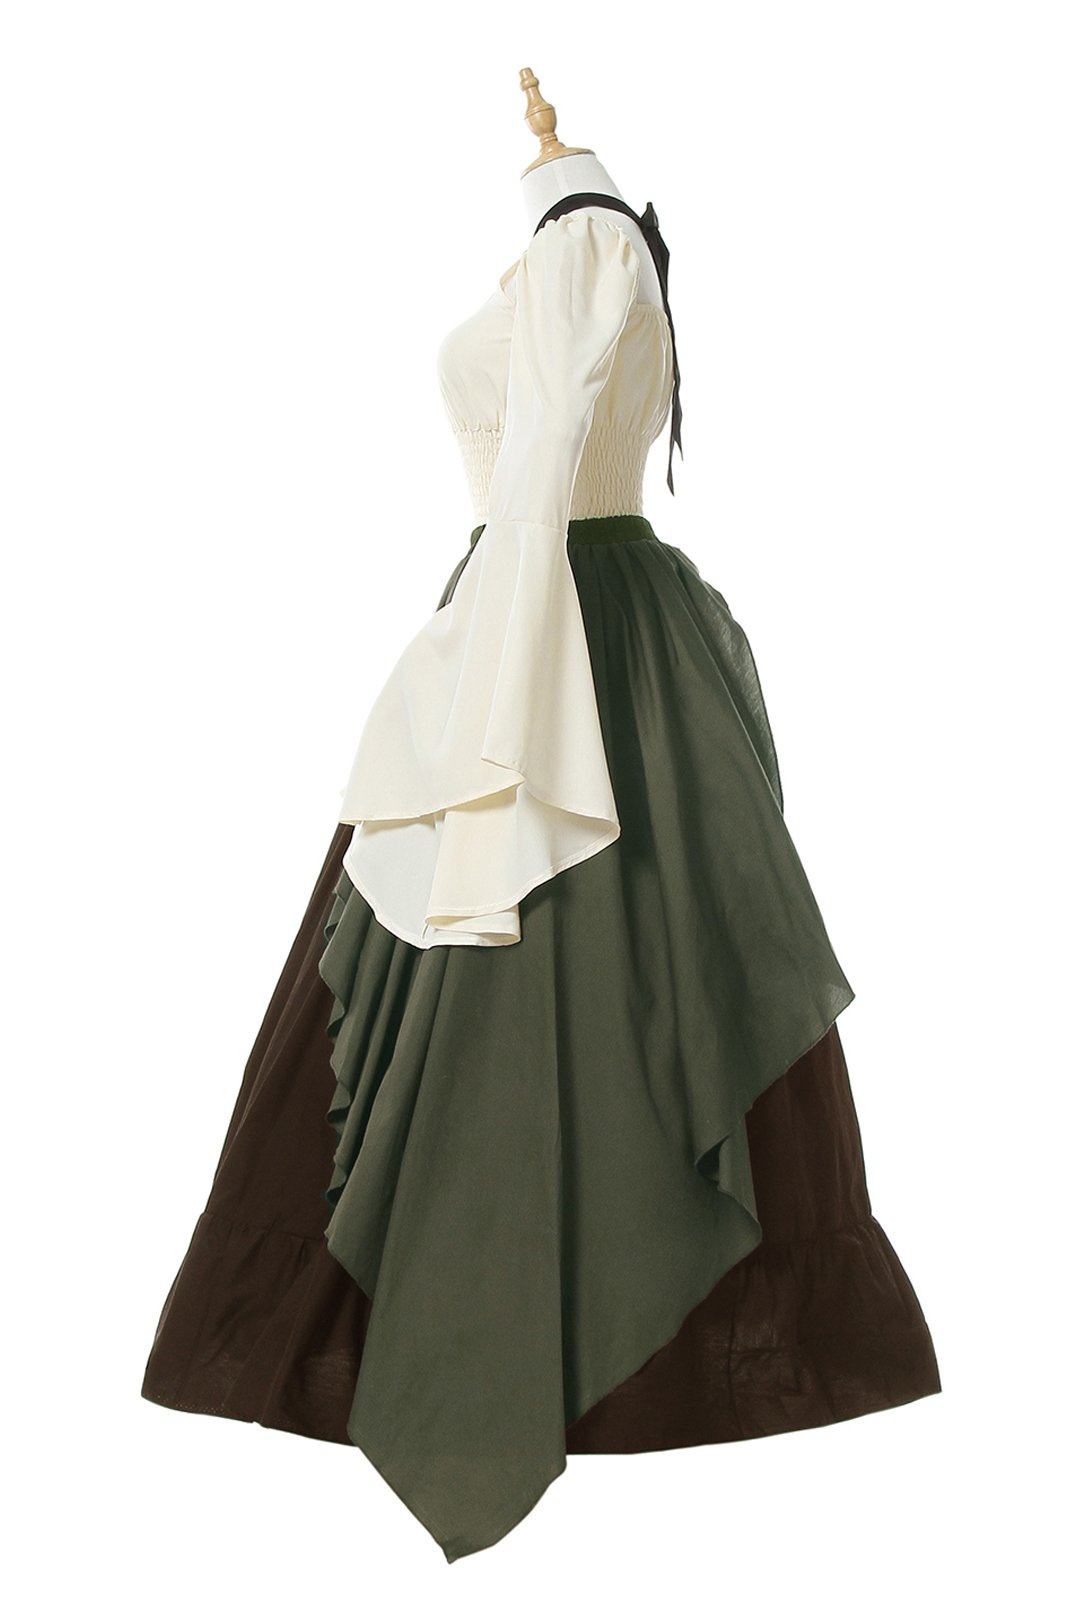 Nuotuo Womens Renaissance Medieval Costume Dress Gothic